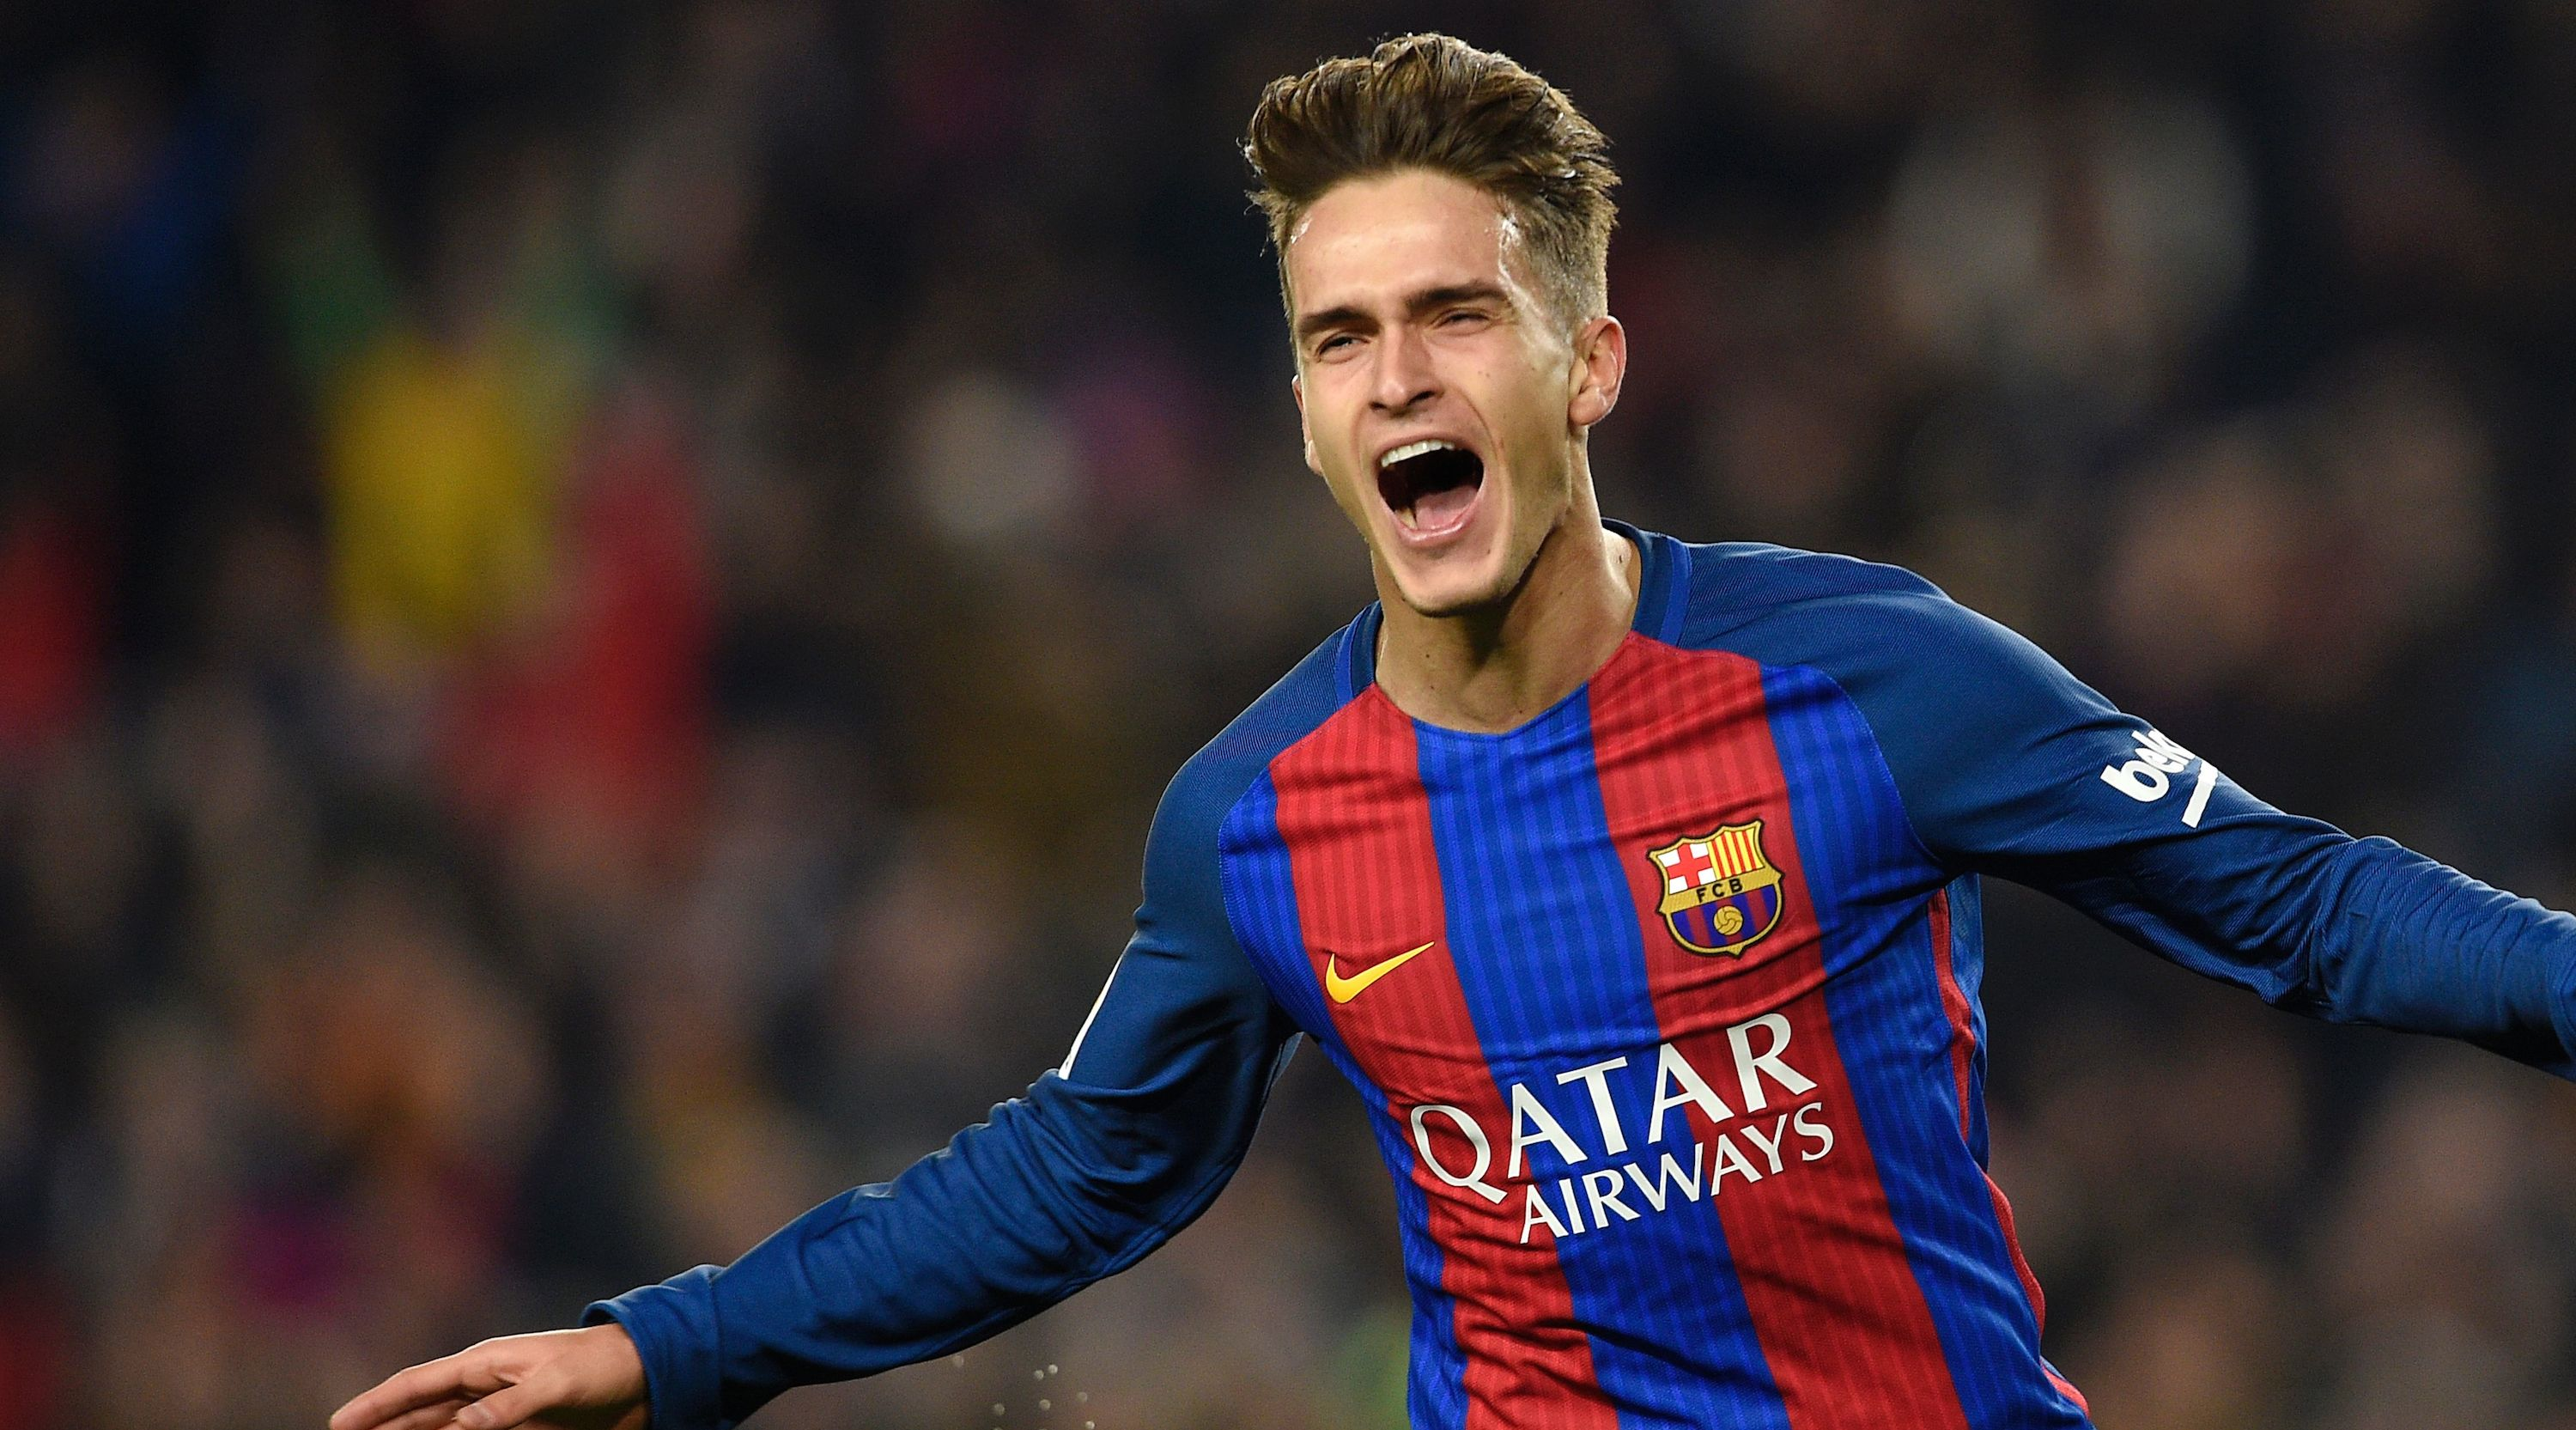 Barcelona's midfielder Denis Suarez celebrates after scoring the opener during the Spanish Copa del Rey (King's Cup) quarter final second leg football match FC Barcelona vs Real Sociedad at the Camp Nou stadium in Barcelona on January 26, 2017. / AFP / LLUIS GENE (Photo credit should read LLUIS GENE/AFP/Getty Images)